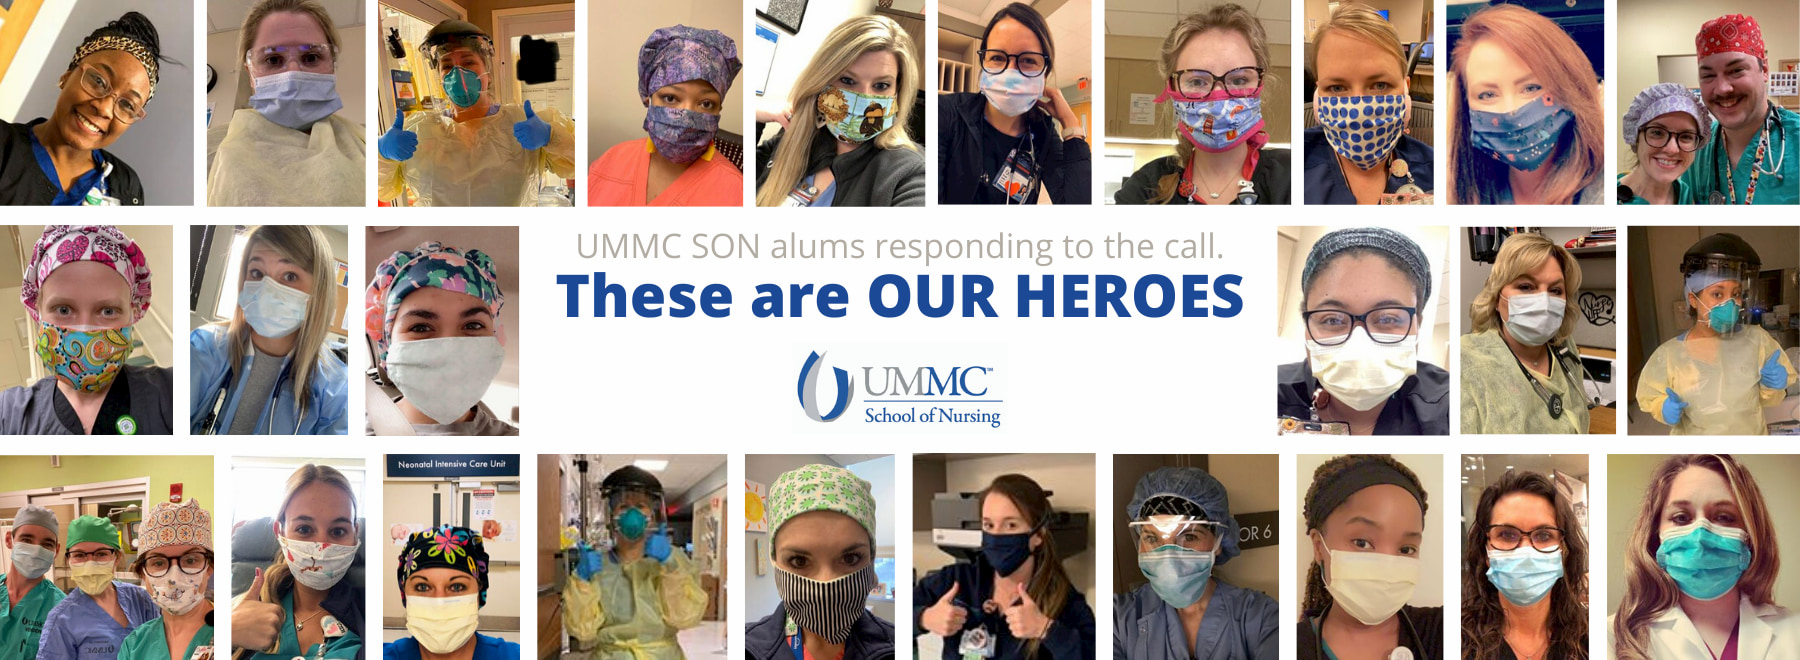 Graphic with many photos of nurses in masks. Text in the middle that reads